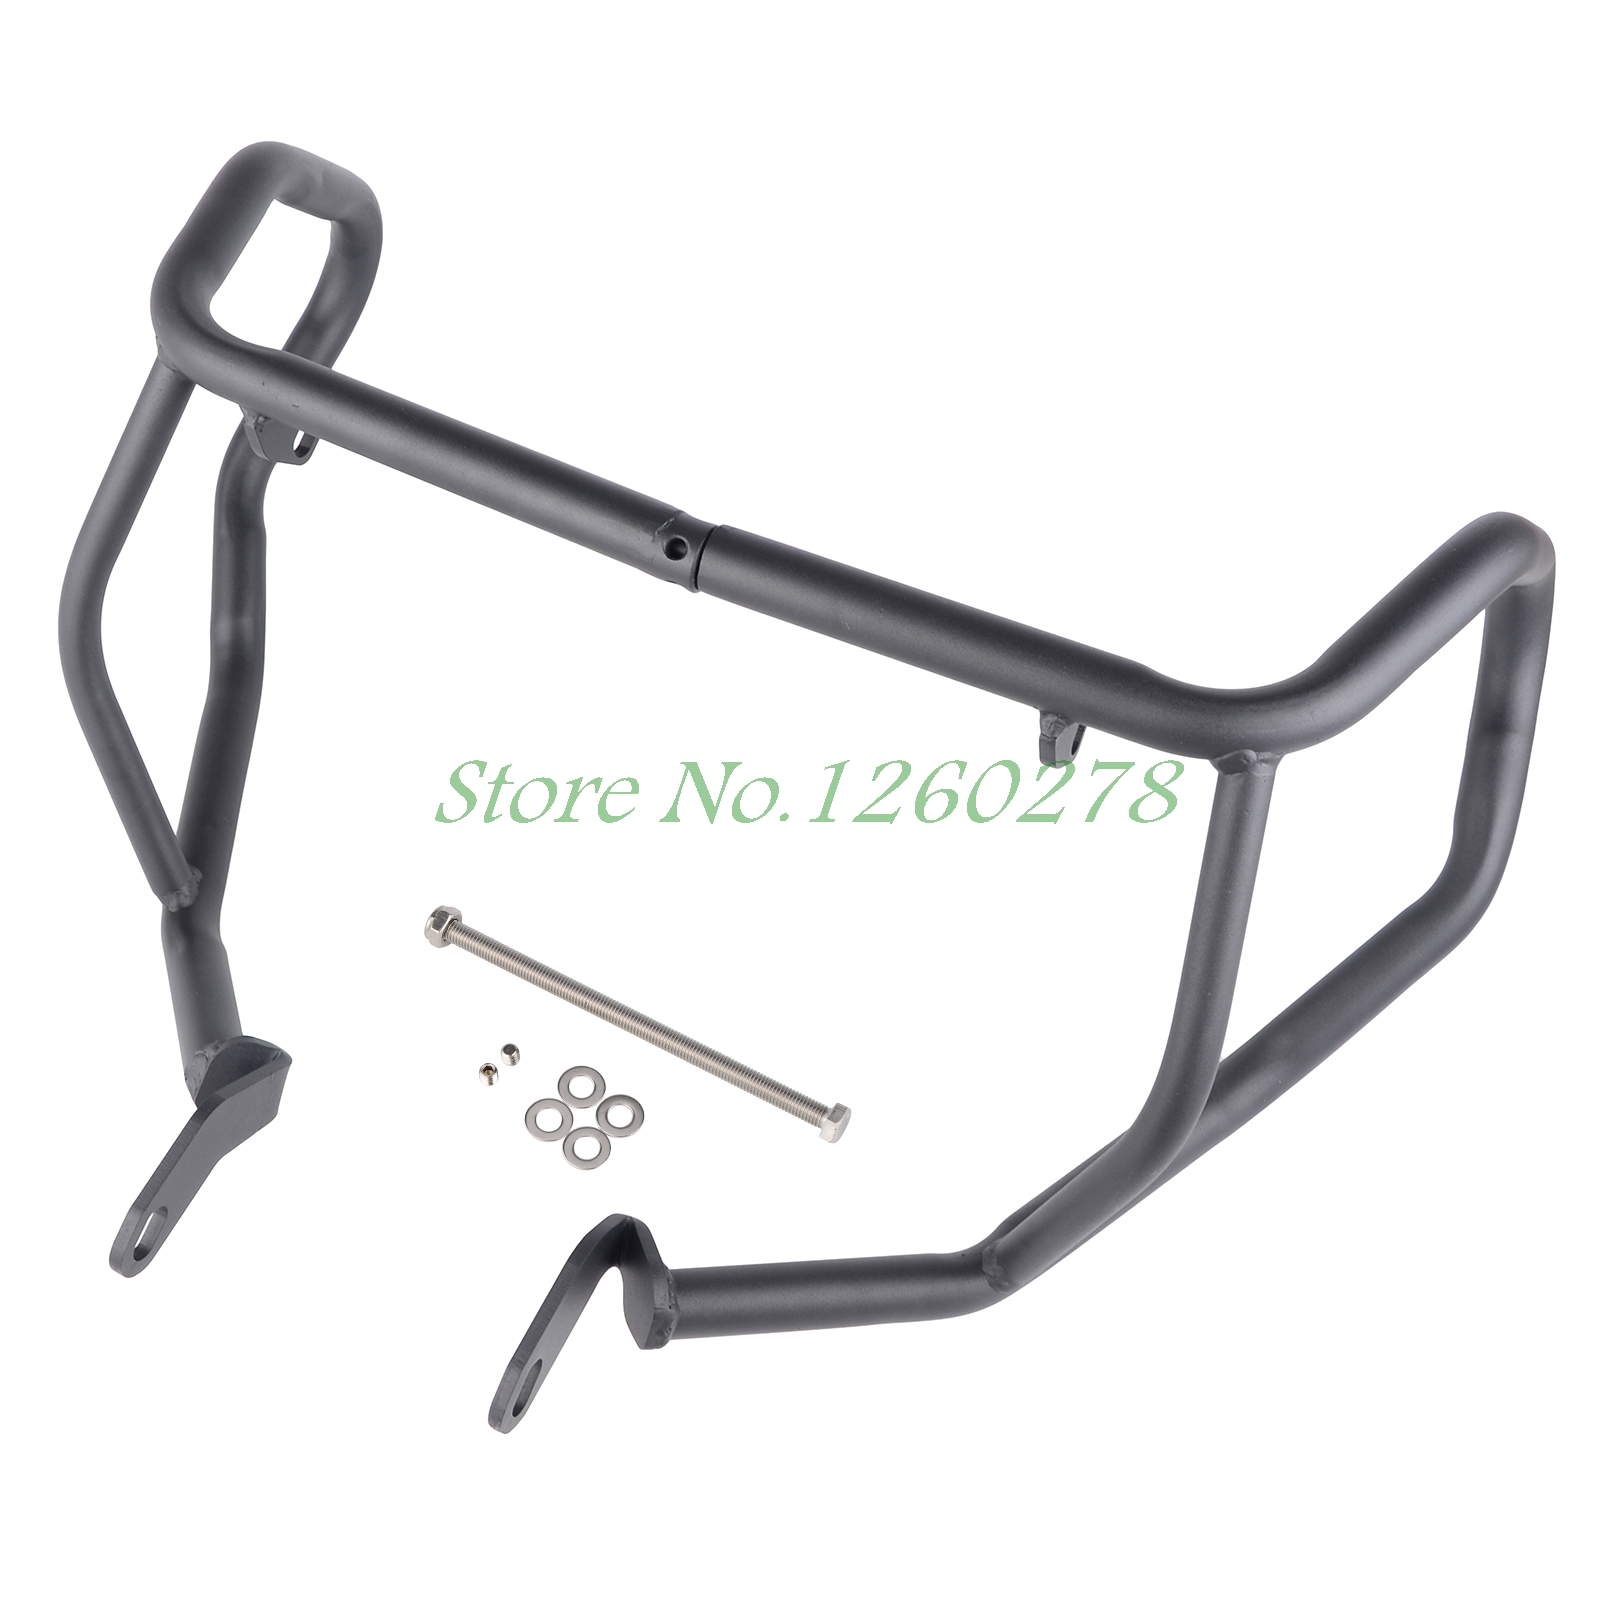 Motorcycle Crash Bar Frame Engine Protection Guard Bumper For Kawasaki ER6N ER-6N 2013 2014 2015 2016 high quality for bmw r1200gs 2013 2014 2015 motorcycle upper engine guard highway crash bar protector silver